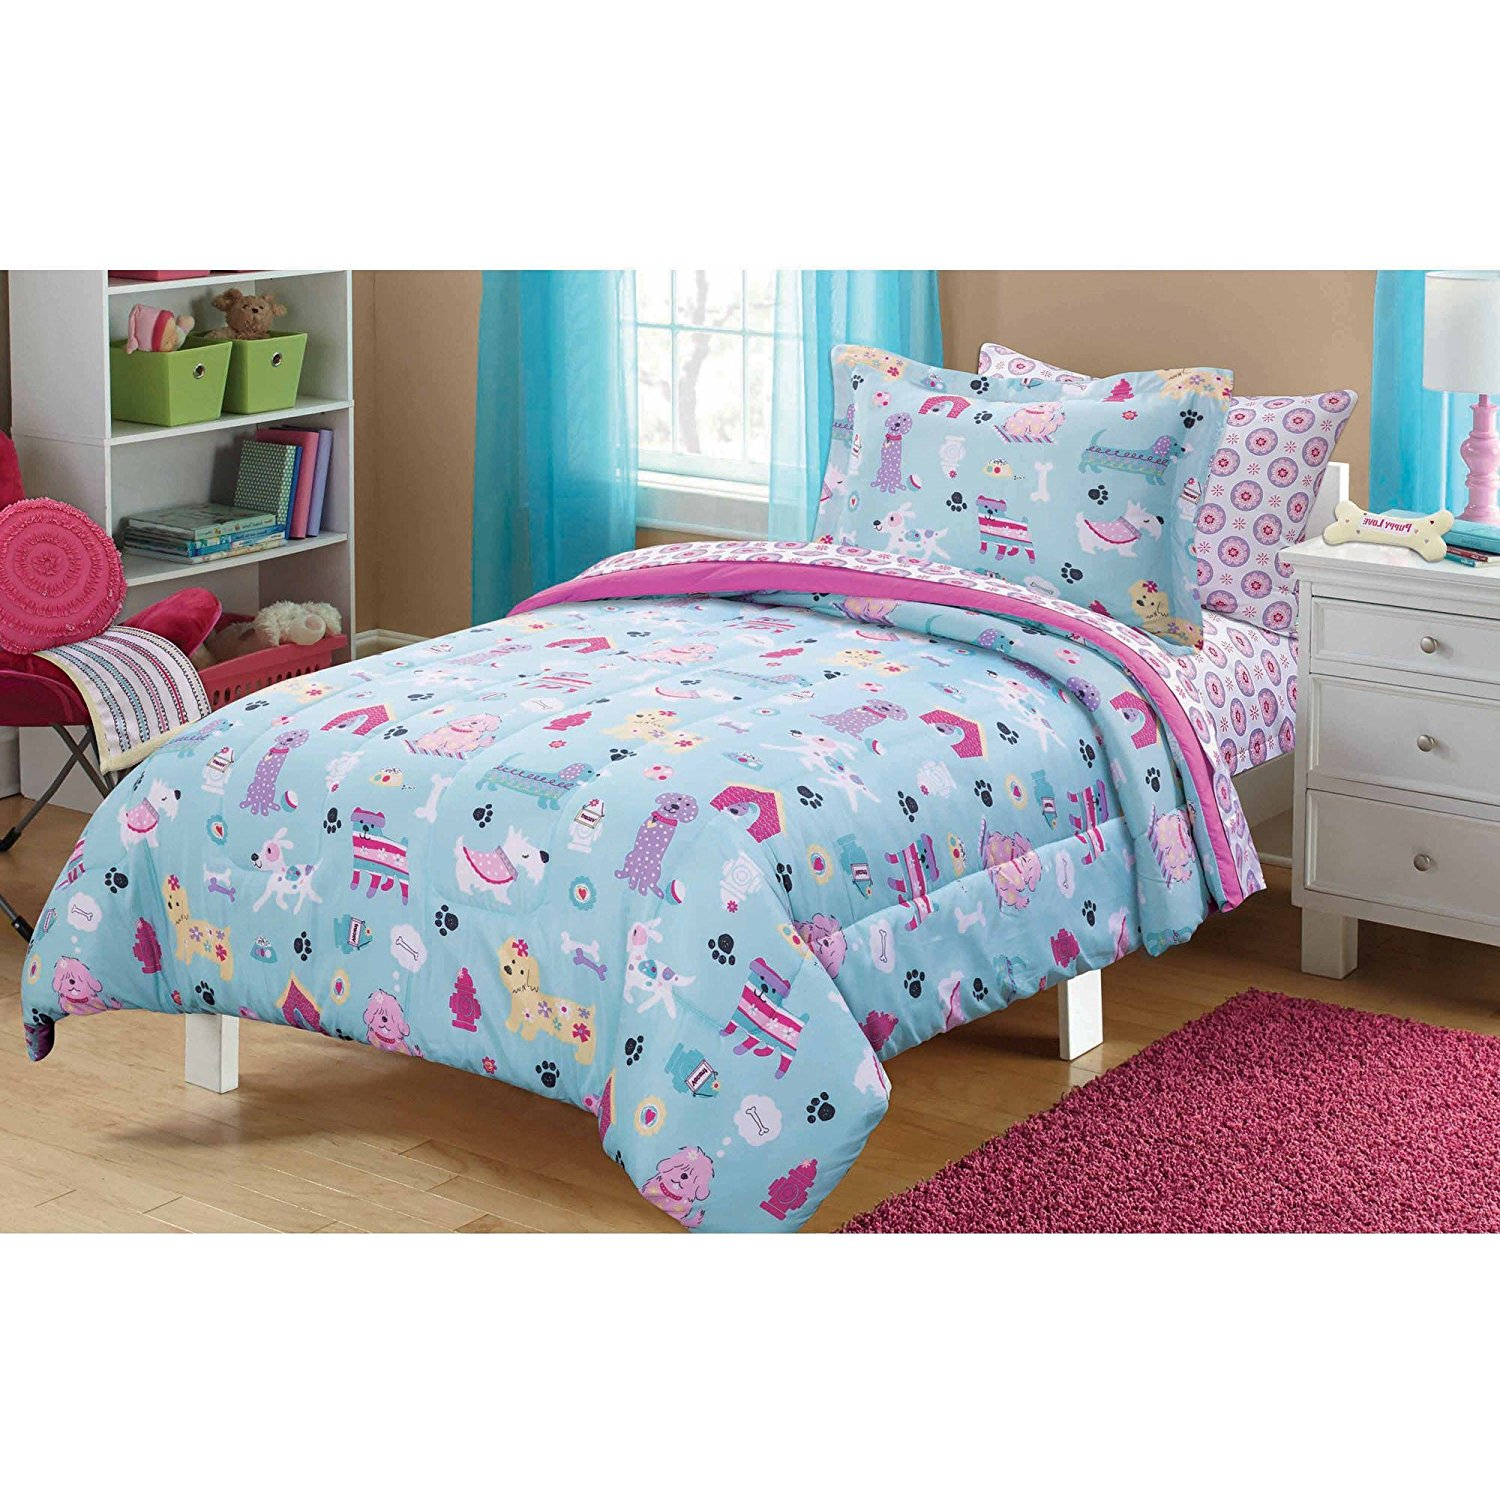 5 Piece Kids Puppies Dogs Comforter Twin, Cute Adorable Childrens Playful Dog Themed Bedding , Lovely Little Doggies Blue Teal White Pink, Doghouses Bones Treats, Pretty Puppy Bedding